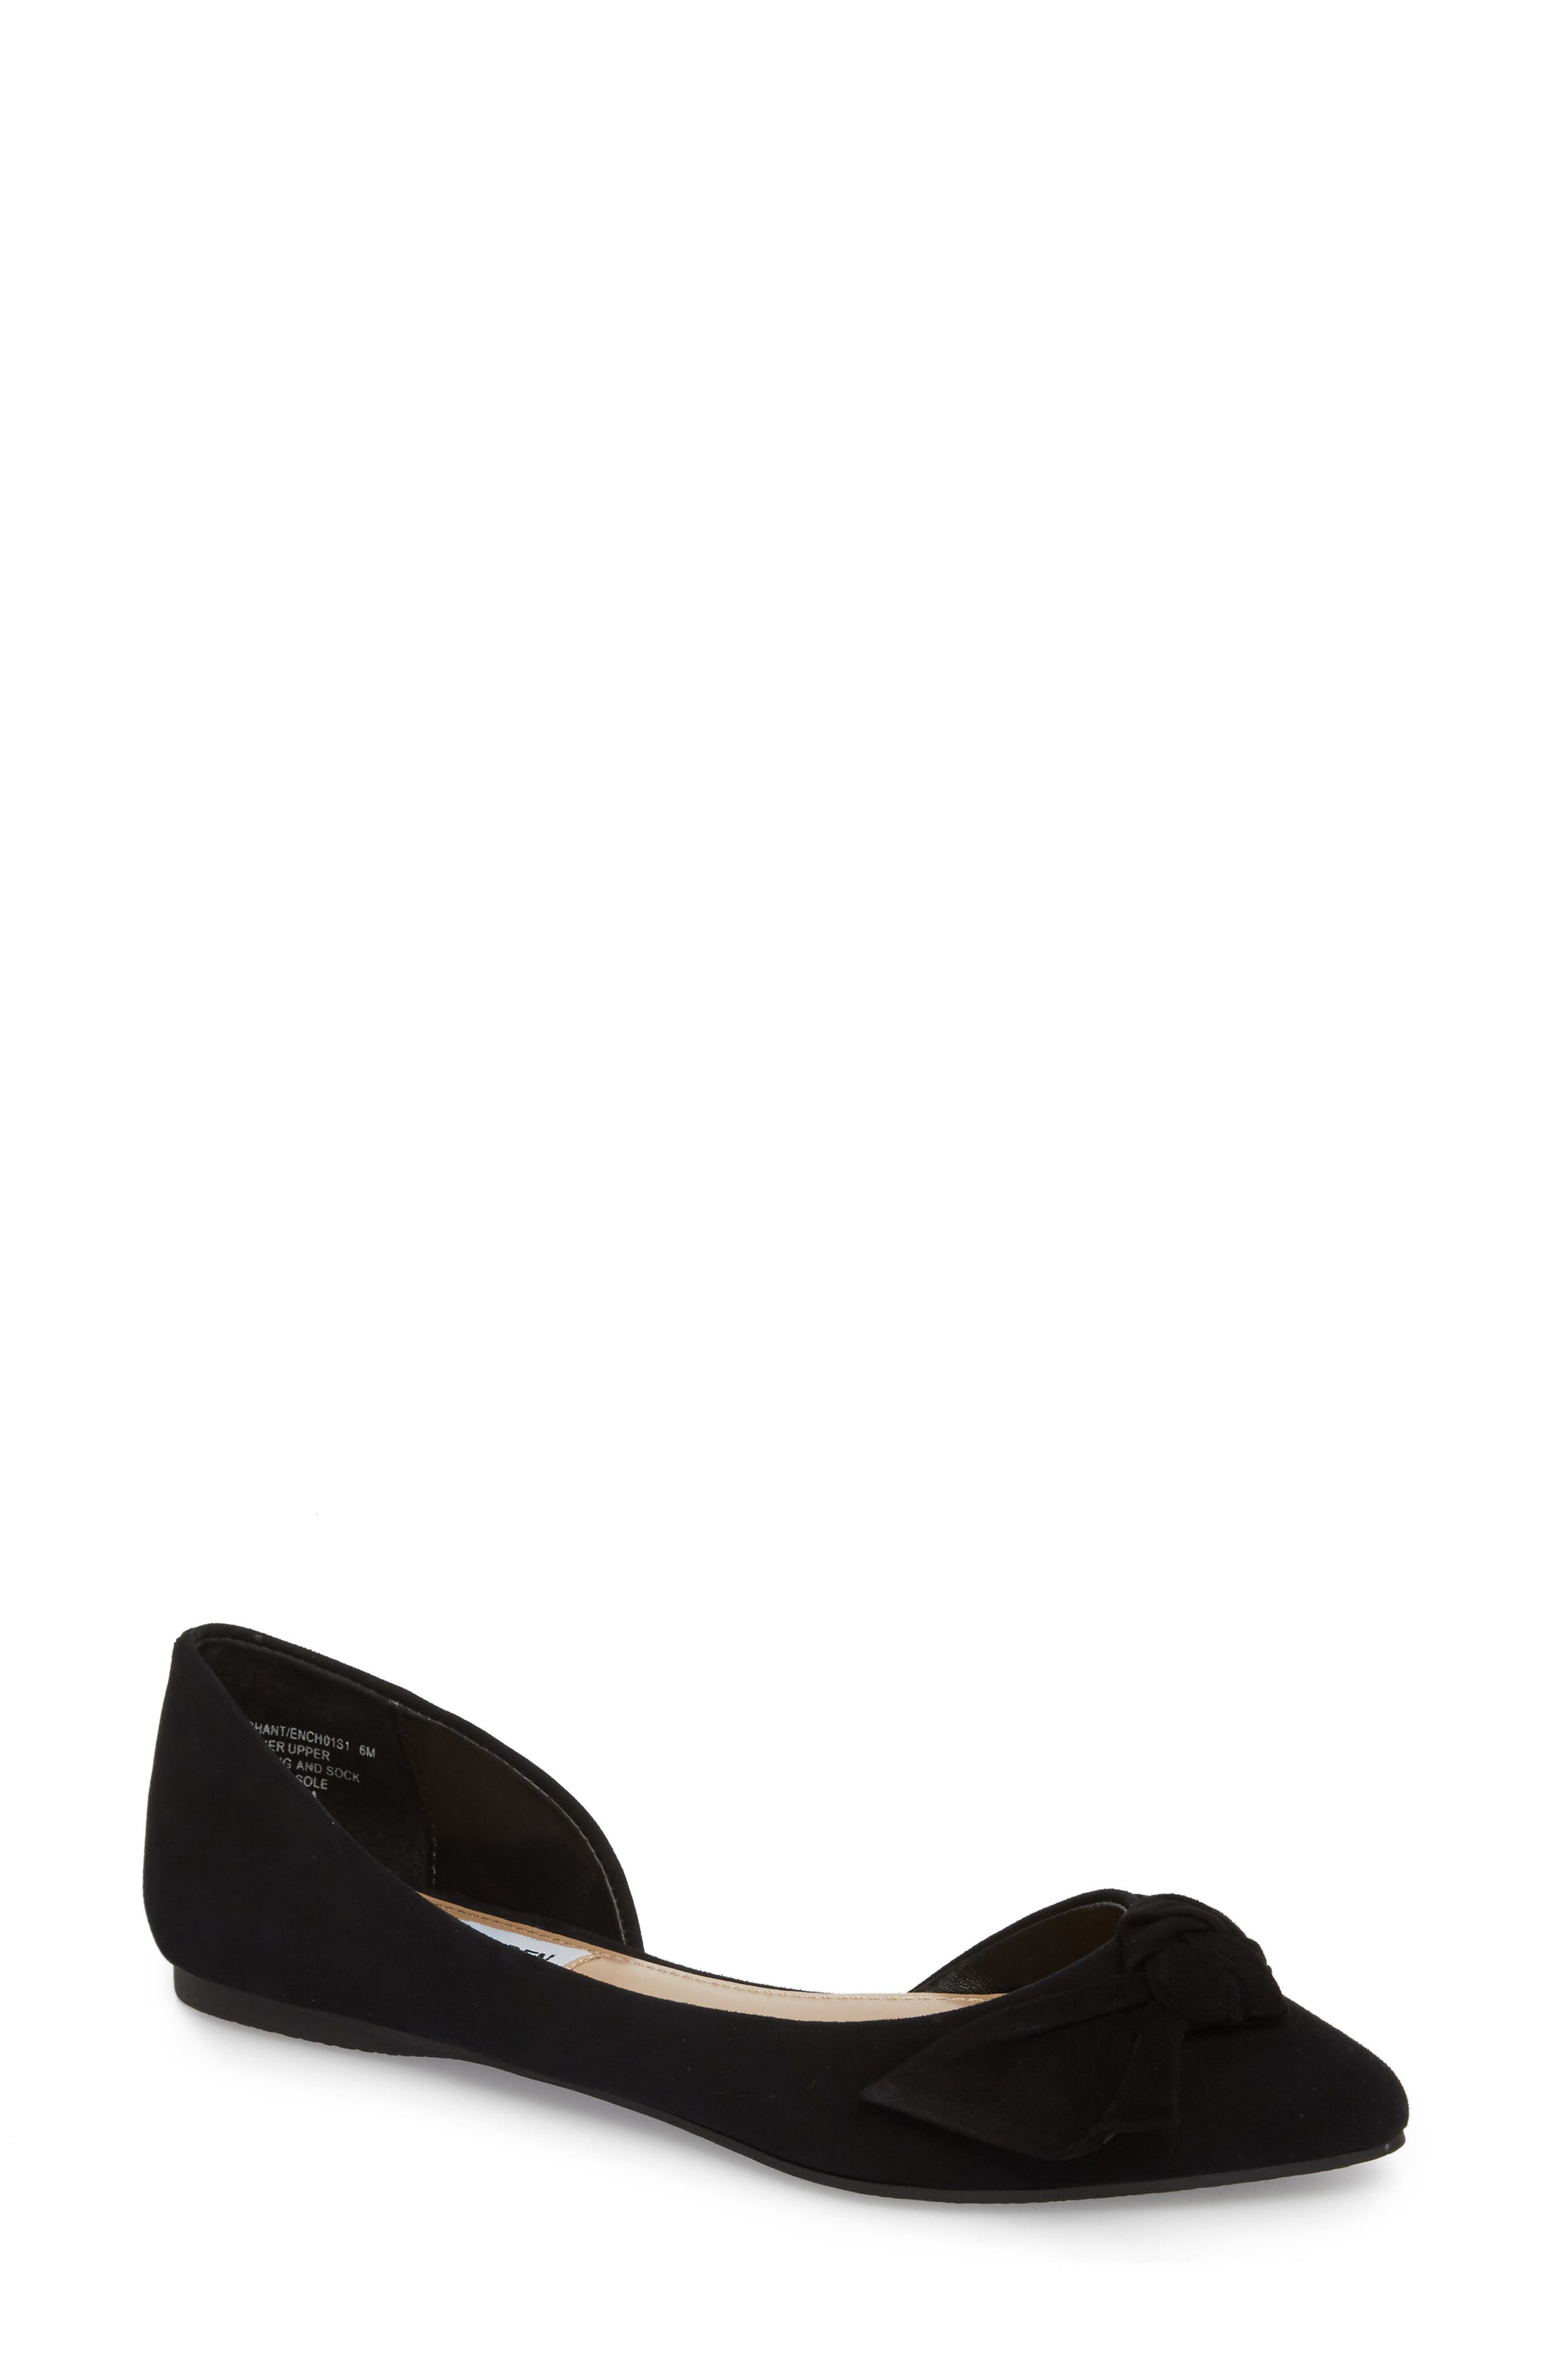 STEVE MADDEN,                             Enchant Flat,                             Main thumbnail 1, color,                             006